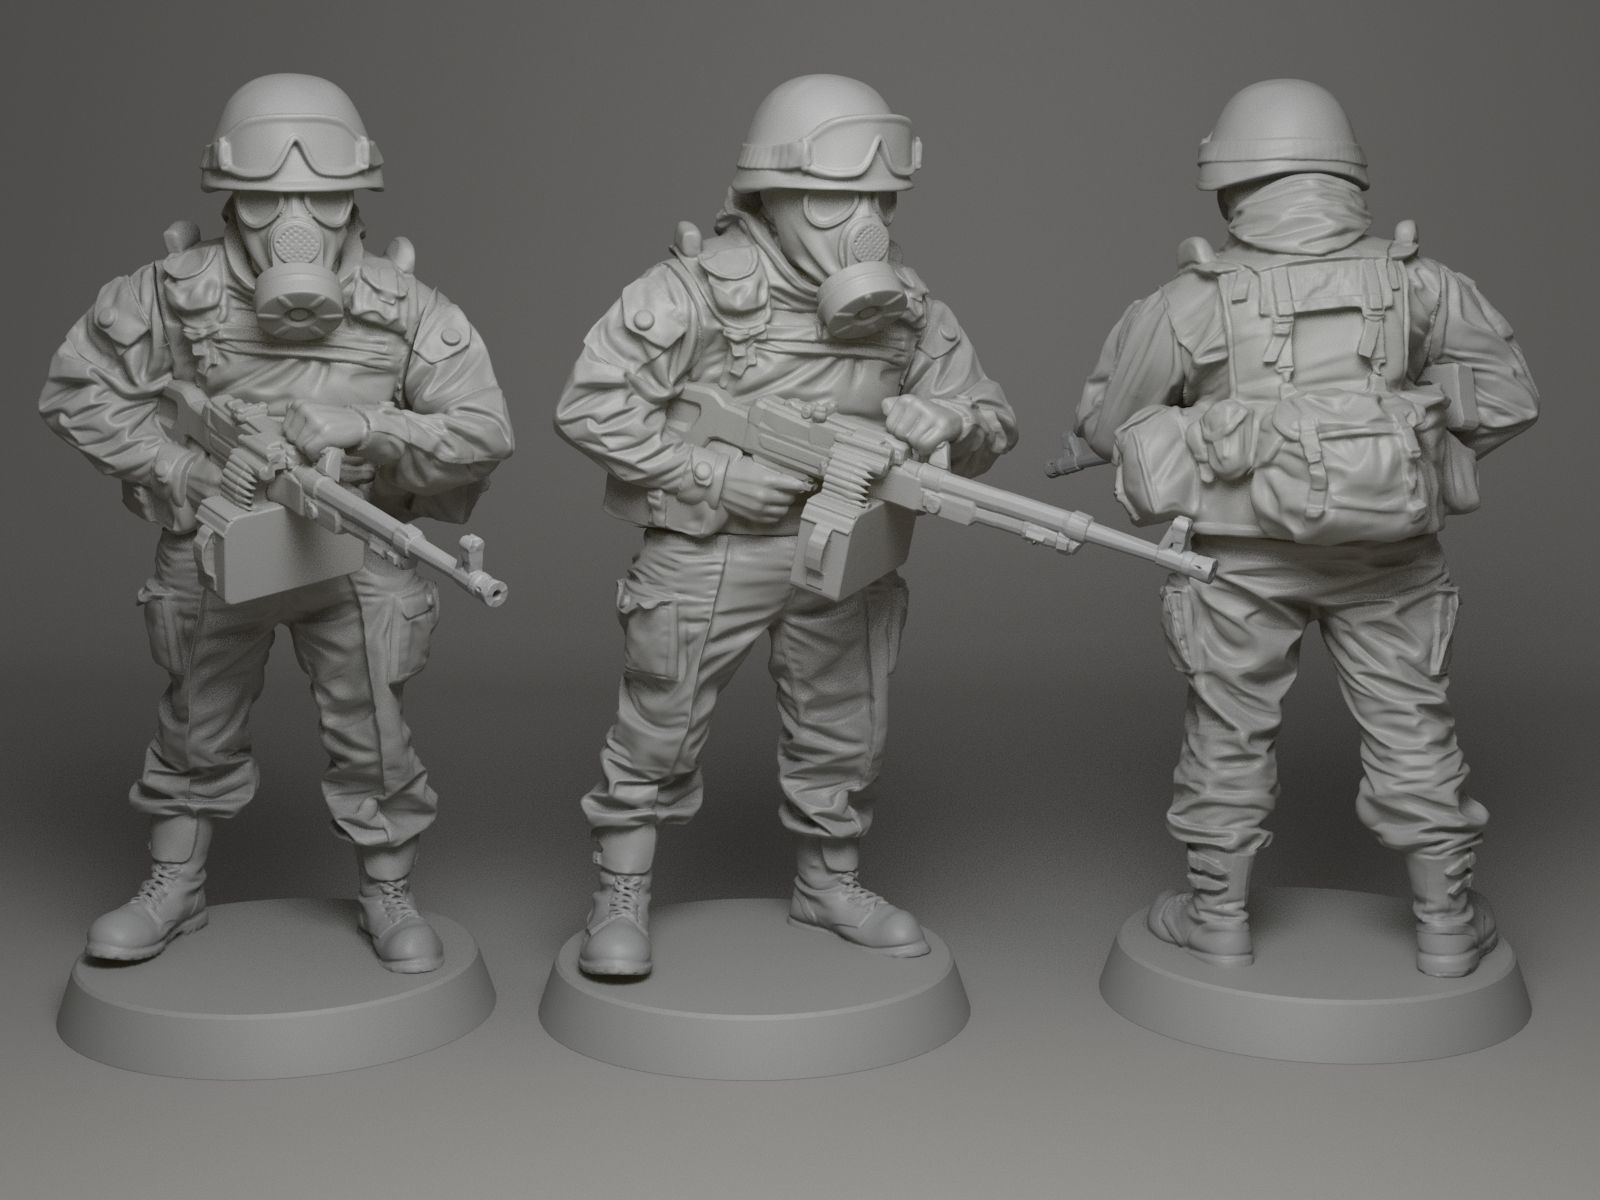 Soldier 28mm scale